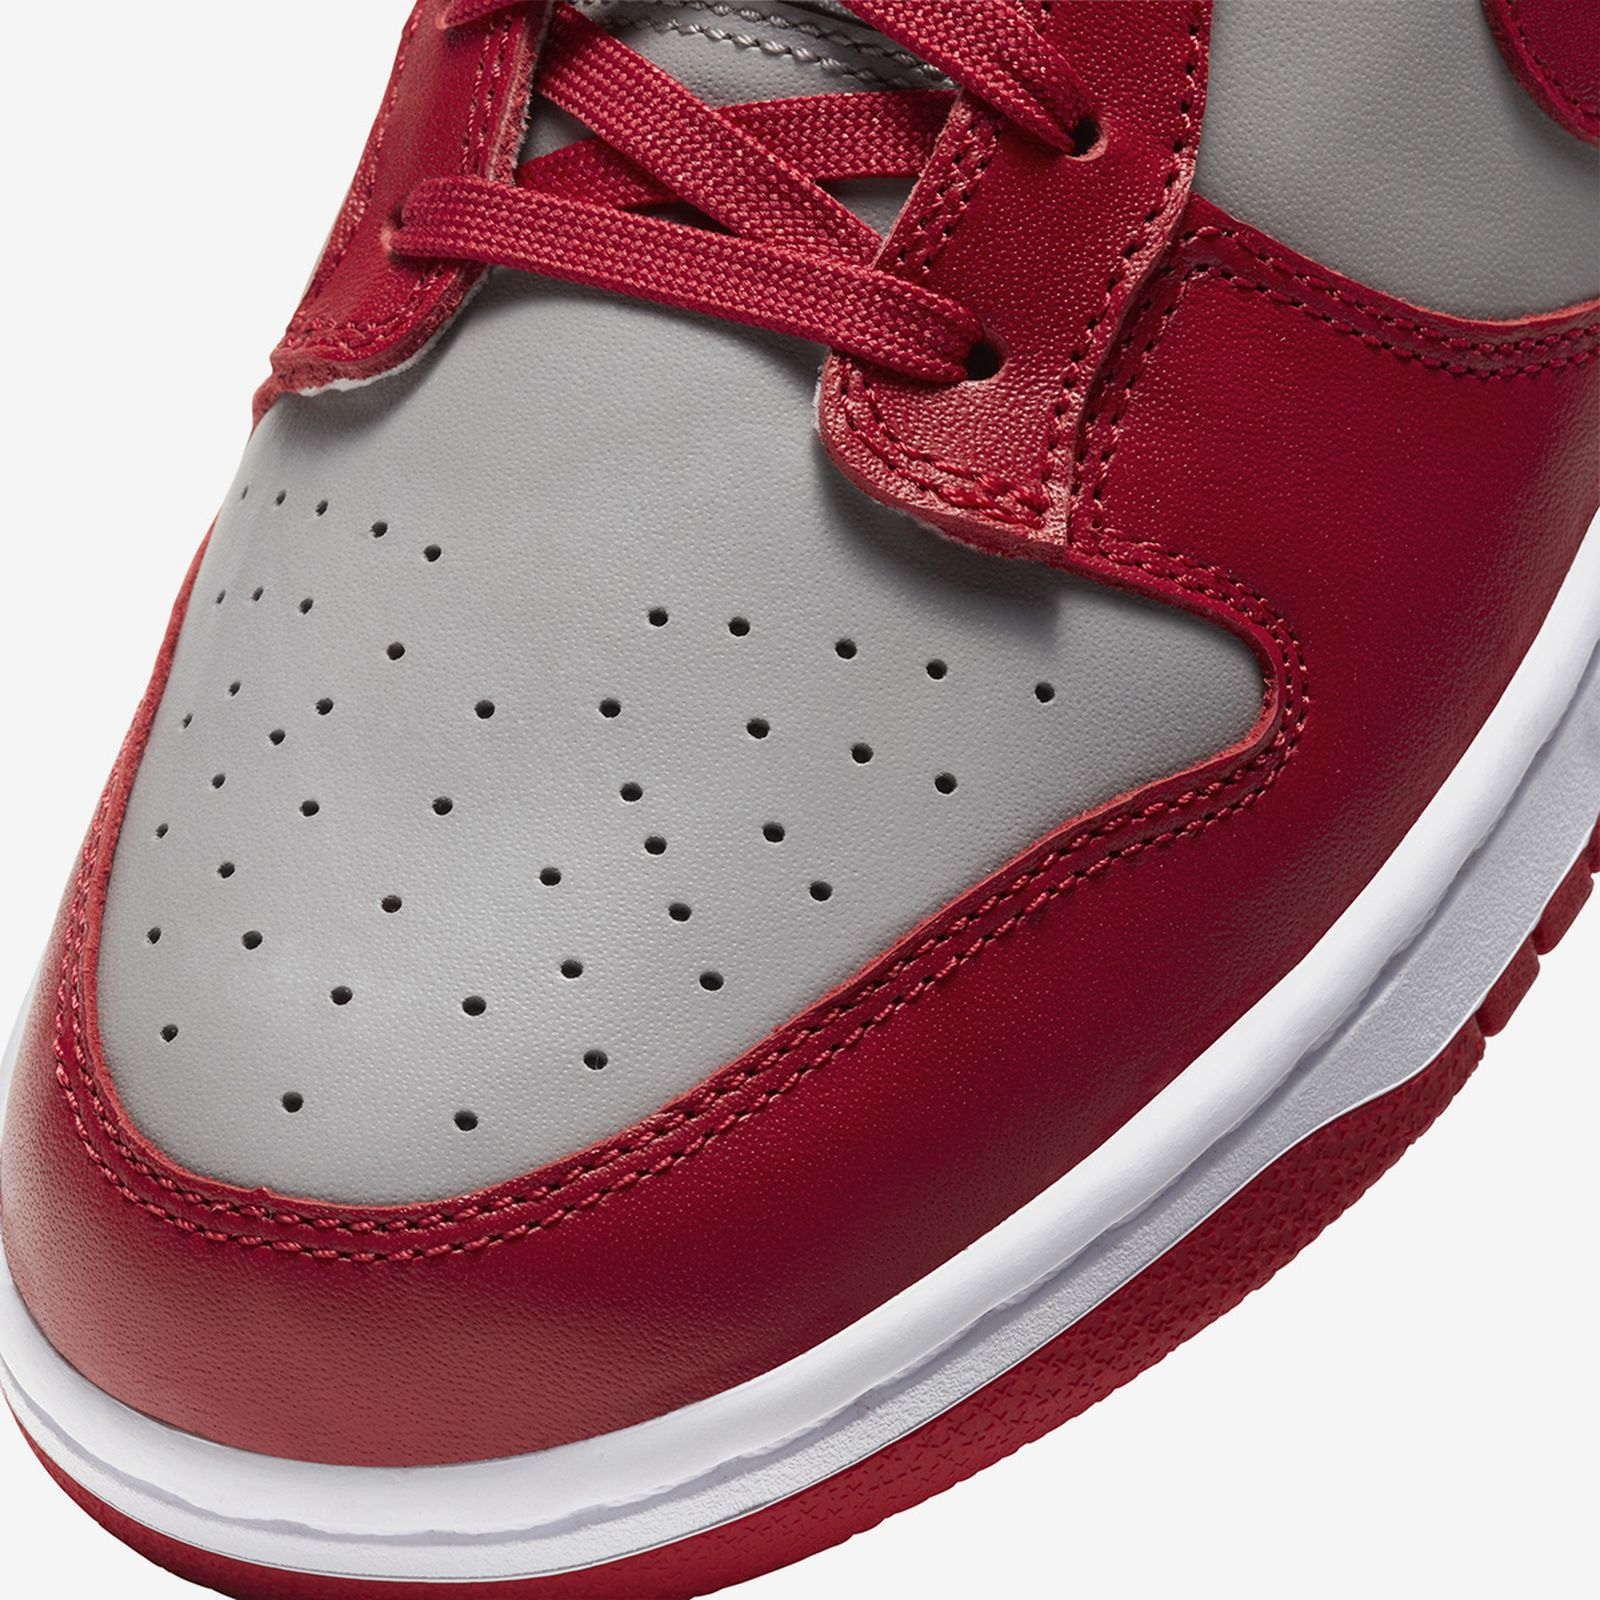 nike-dunk-spring-2021-release-date-price-1-18